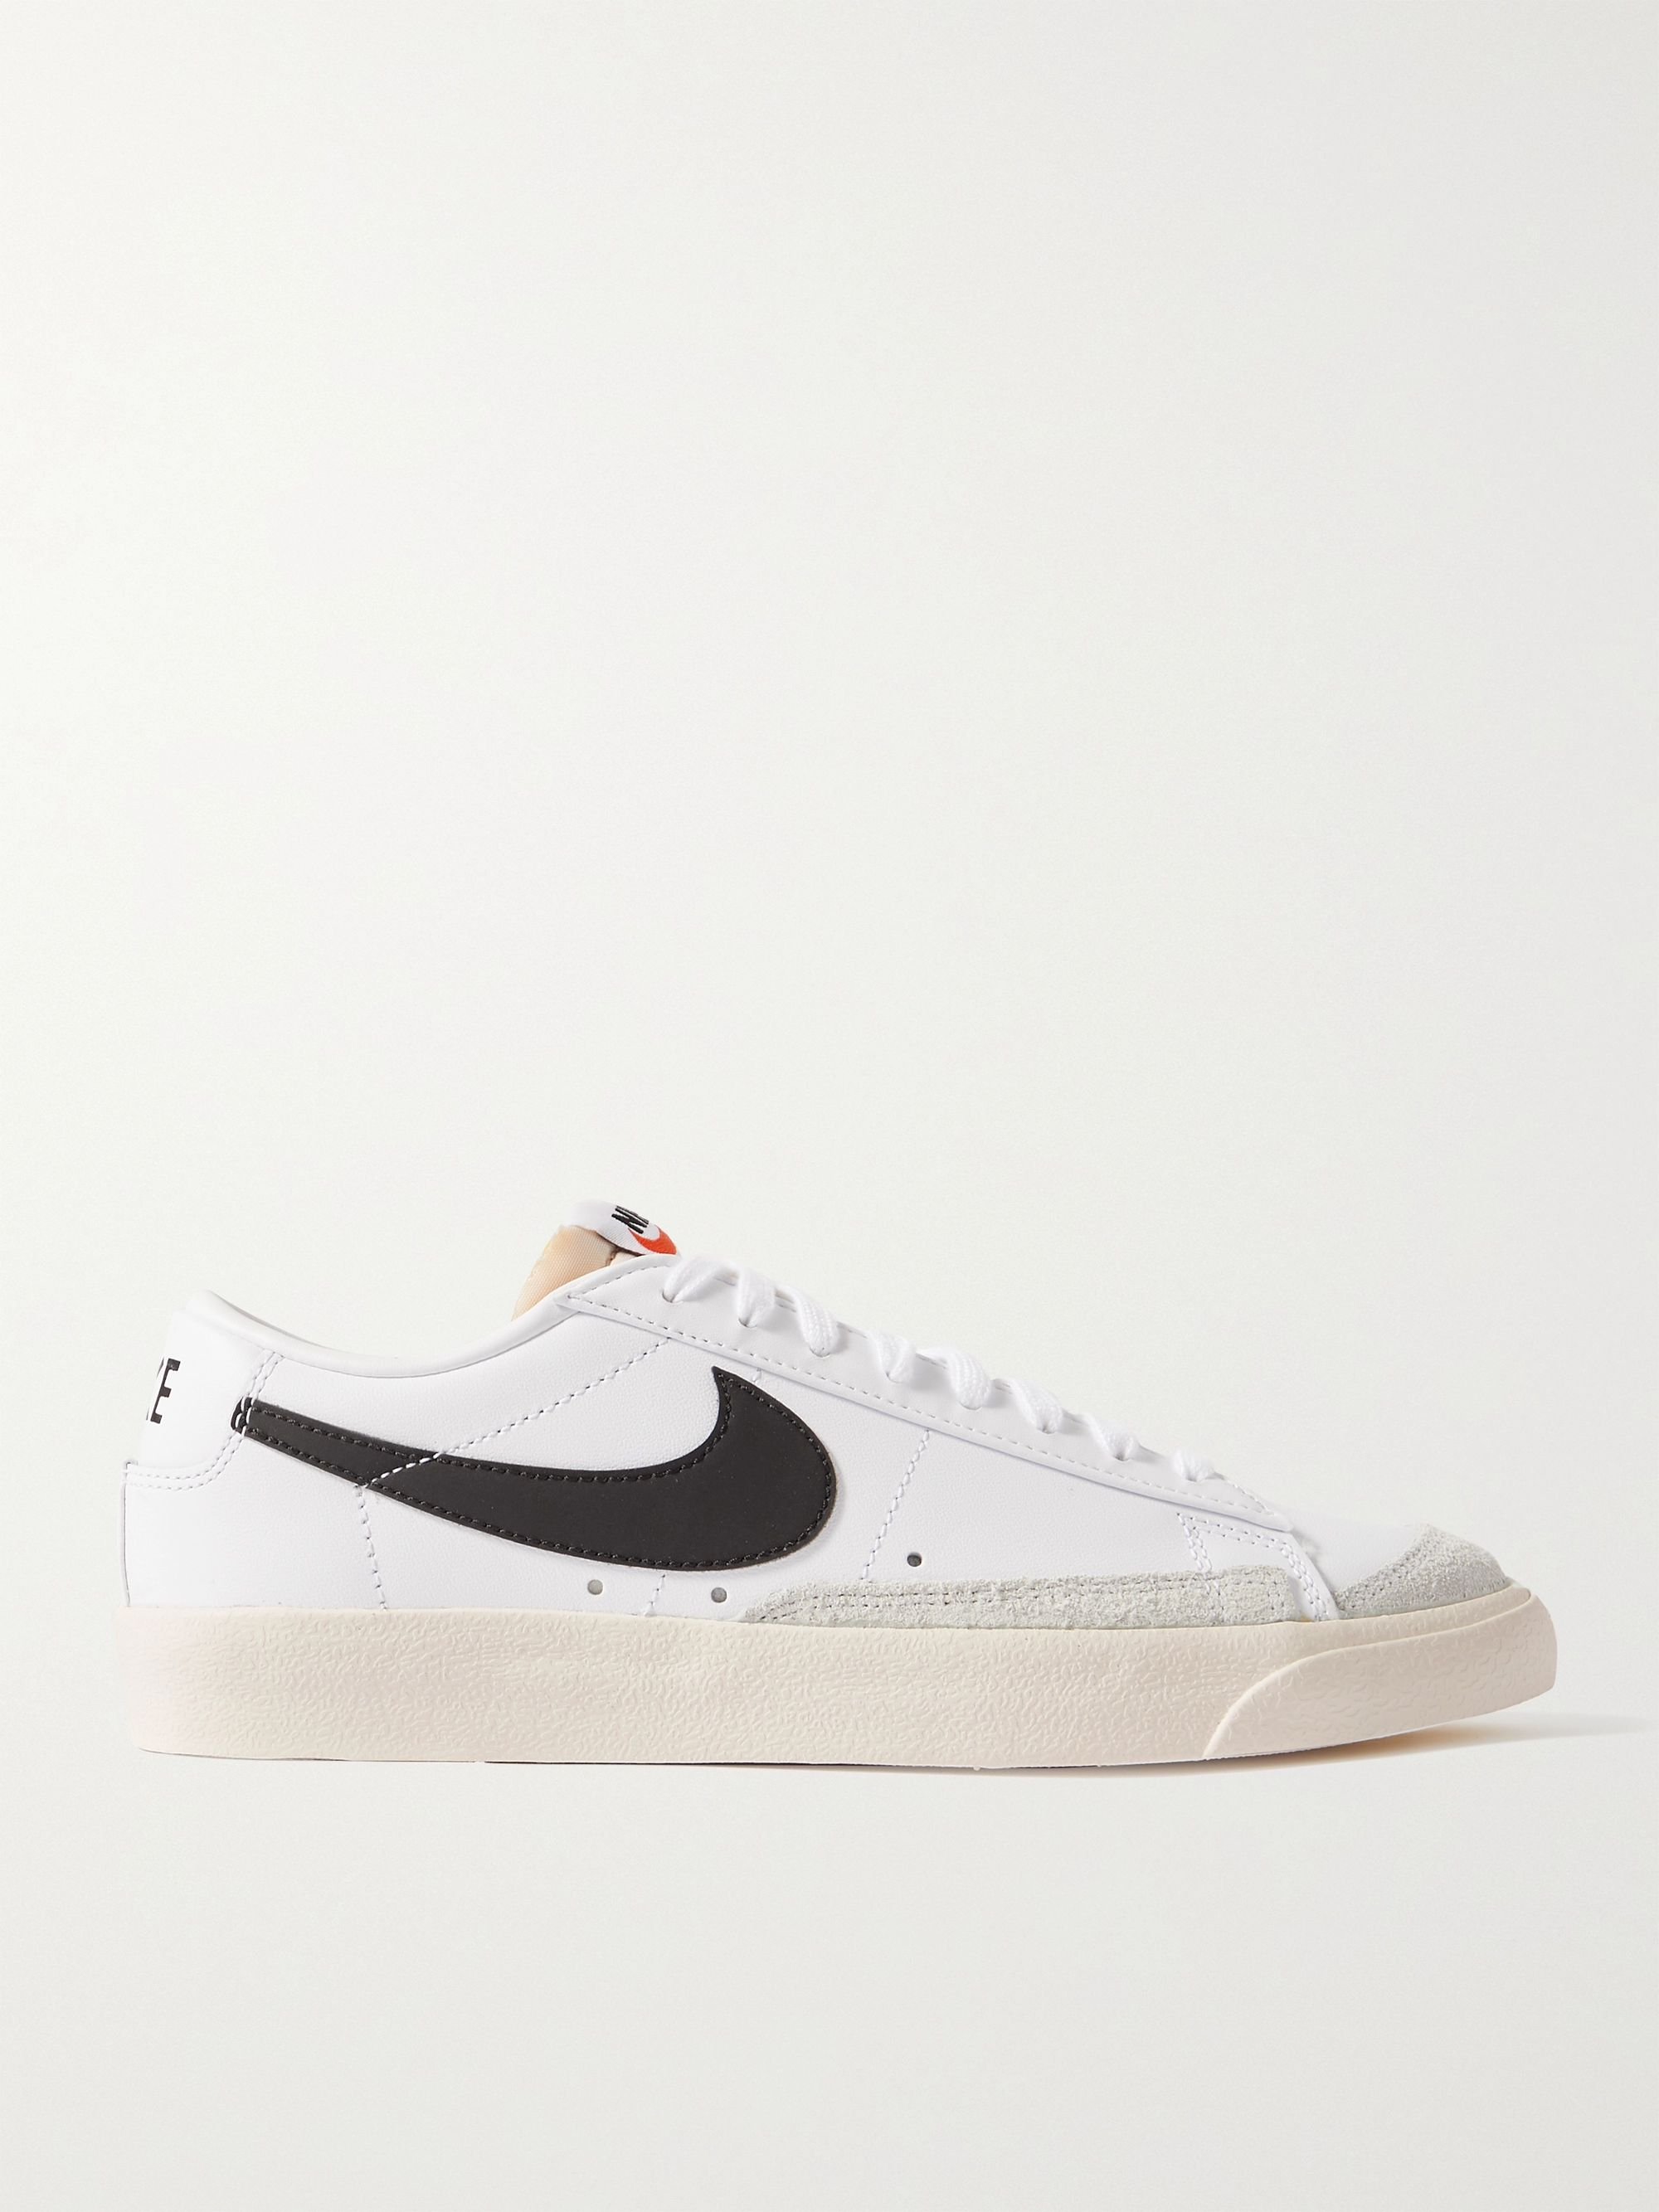 Blazer Low '77 Suede-Trimmed Leather Sneakers